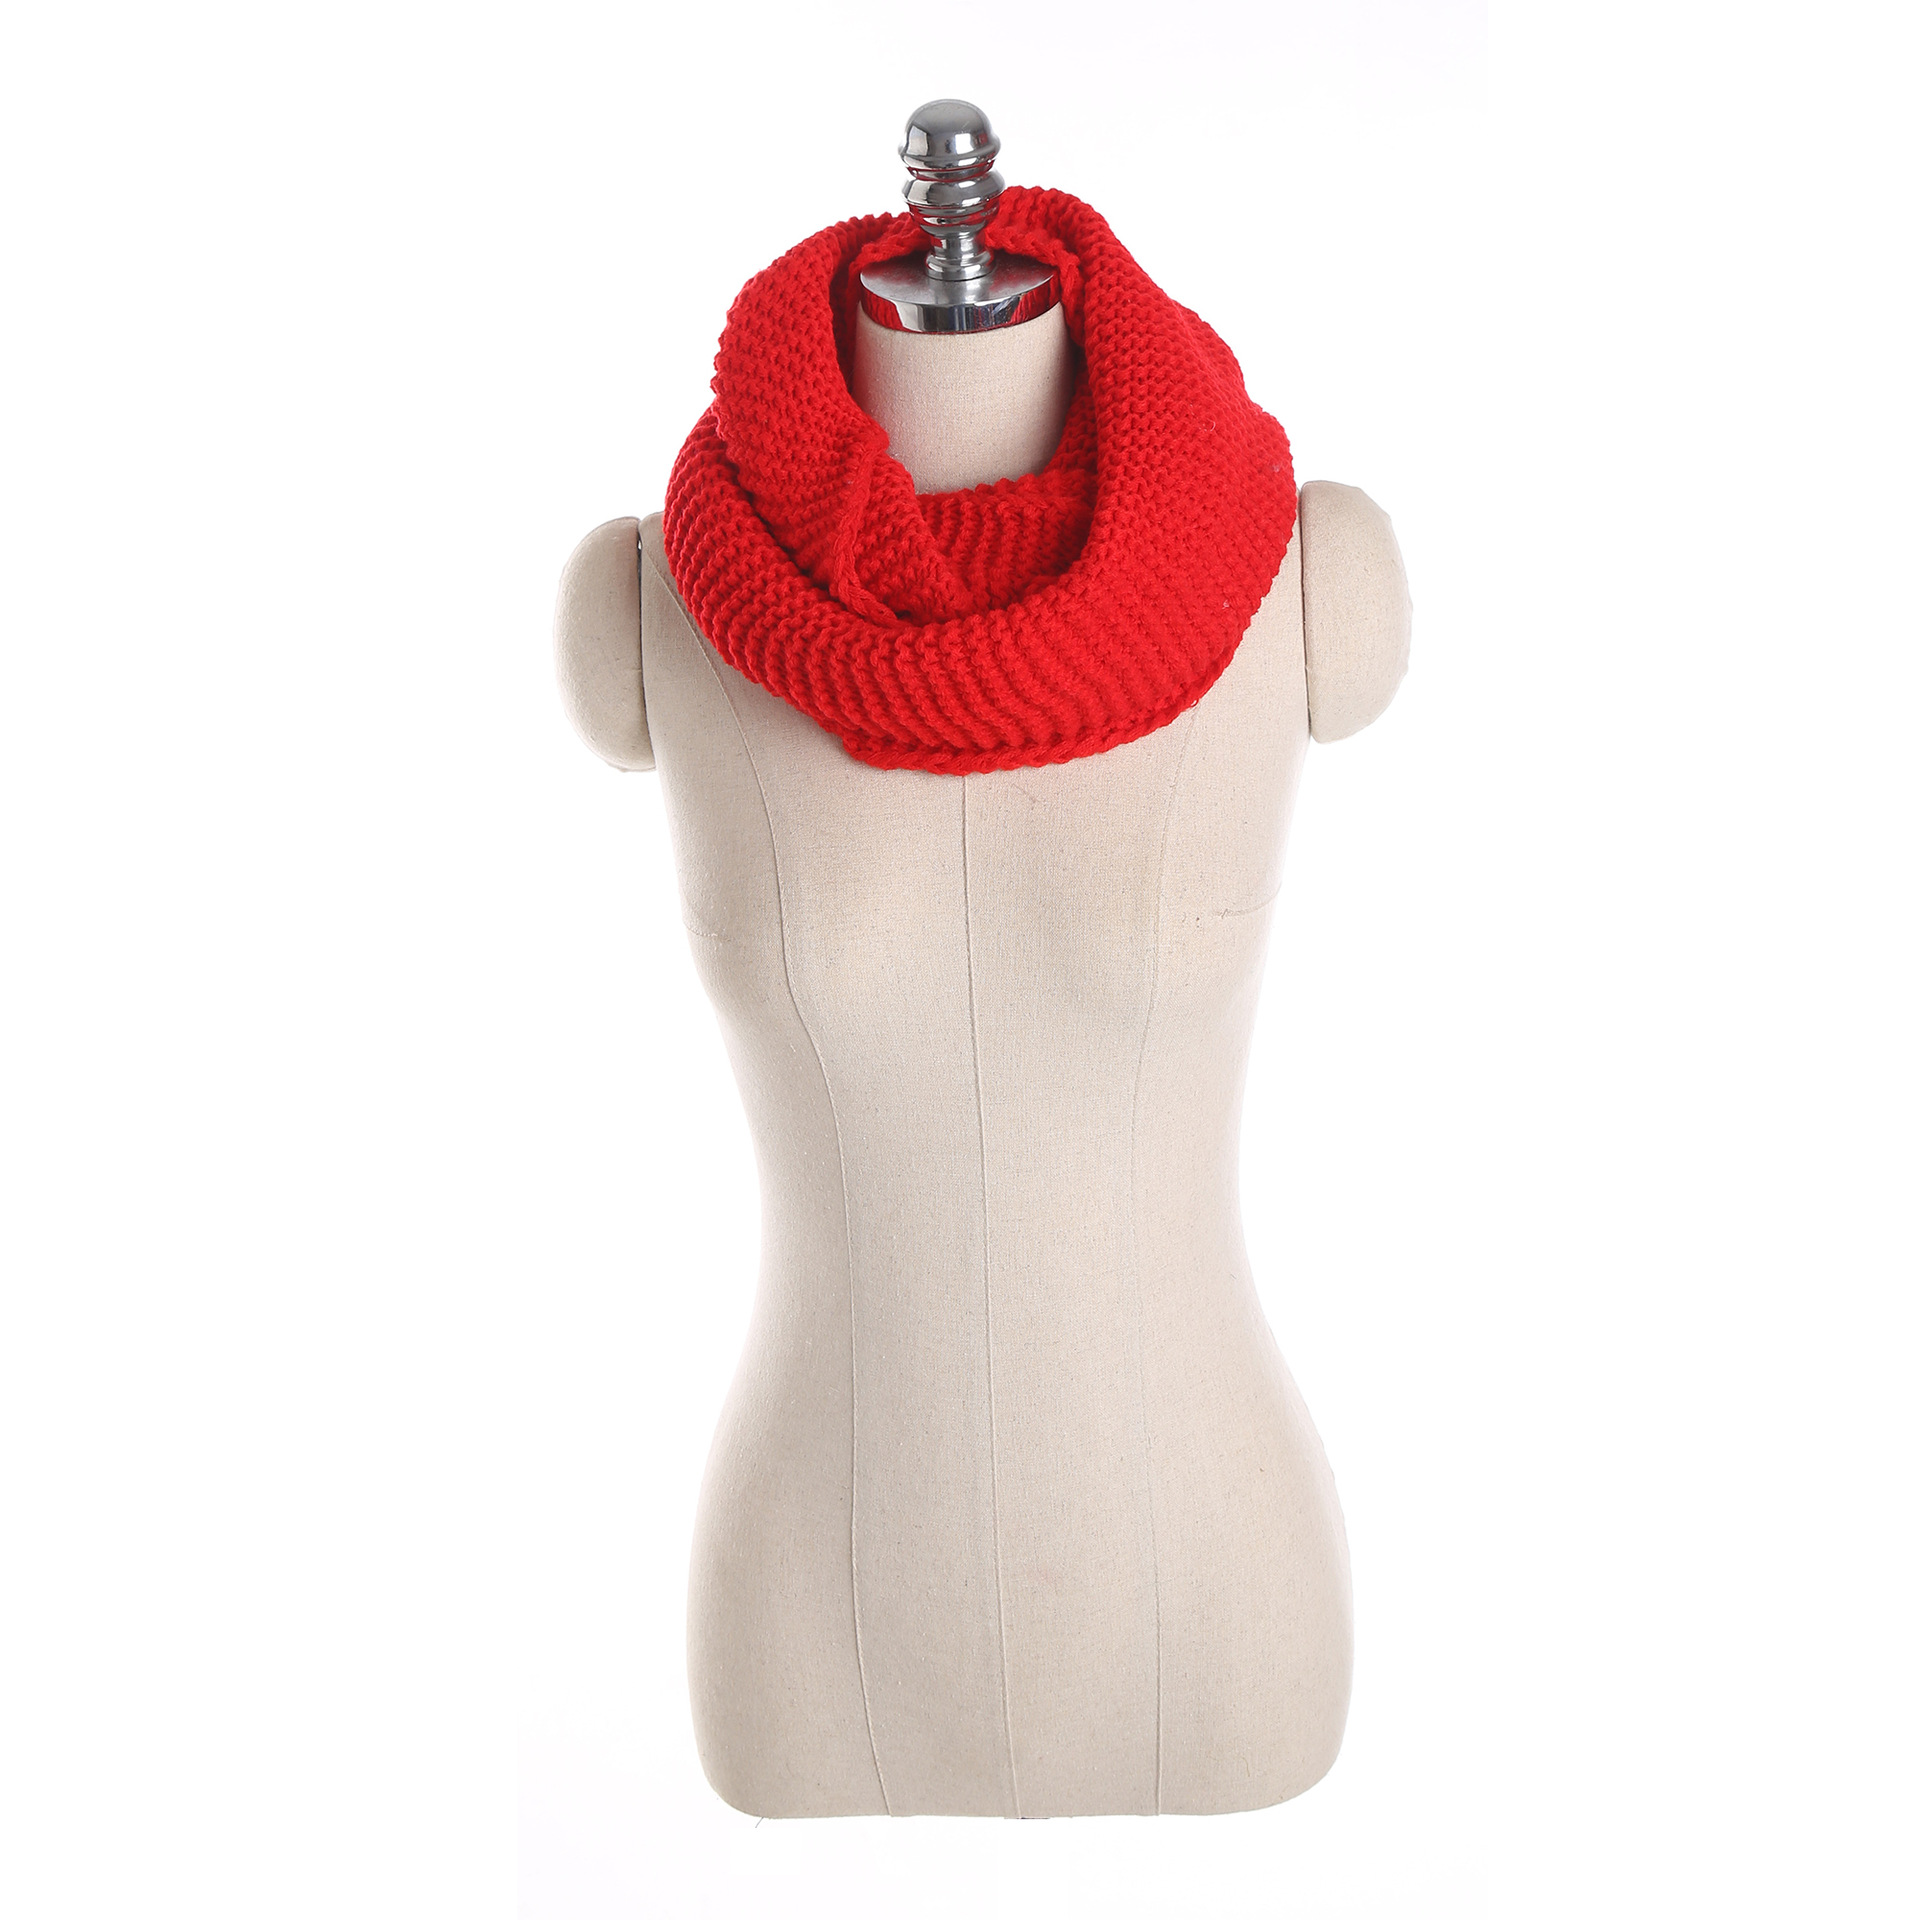 in scarves woman s solid ring winter rings autumn from wave head knitting soft scarf knitted spring neck warm hand item women duftgold yarn female clothing